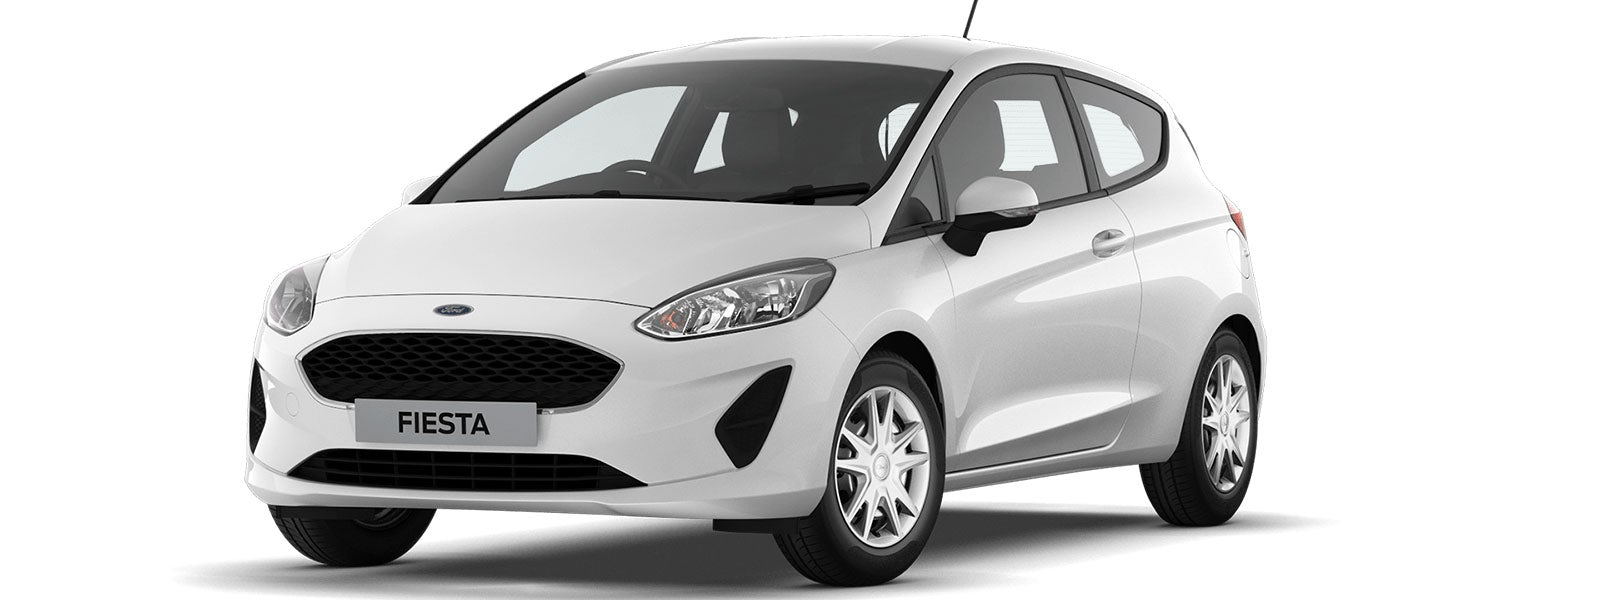 2017 ford fiesta colours guide and prices carwow frozen white 250 sciox Choice Image